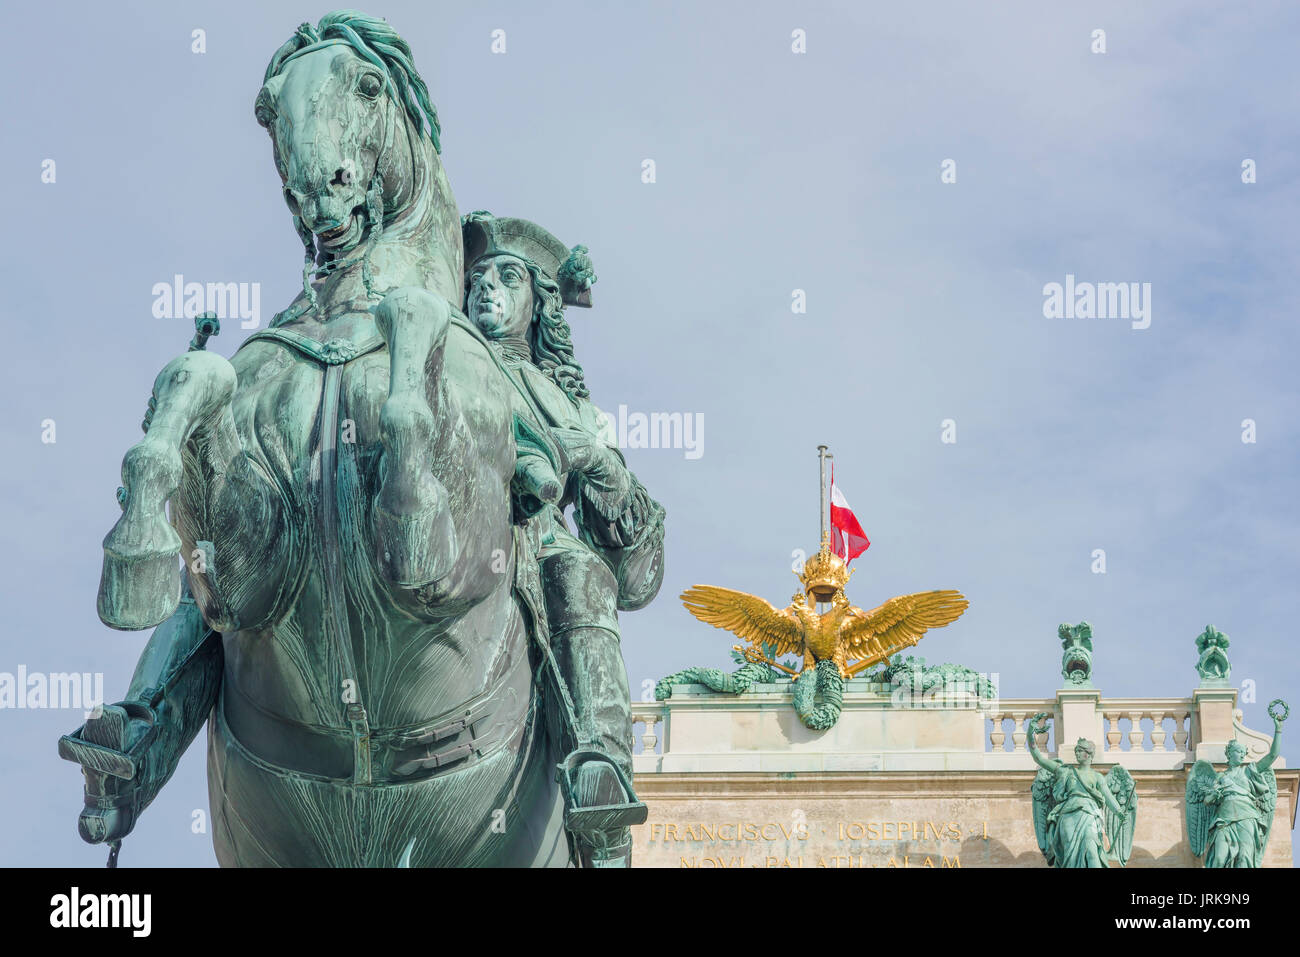 Vienna Hofburg Palace, statue of the Habsburg general Prince Eugene in  the Heldenplatz square in the Hofburg Palace, Vienna, Austria. - Stock Image